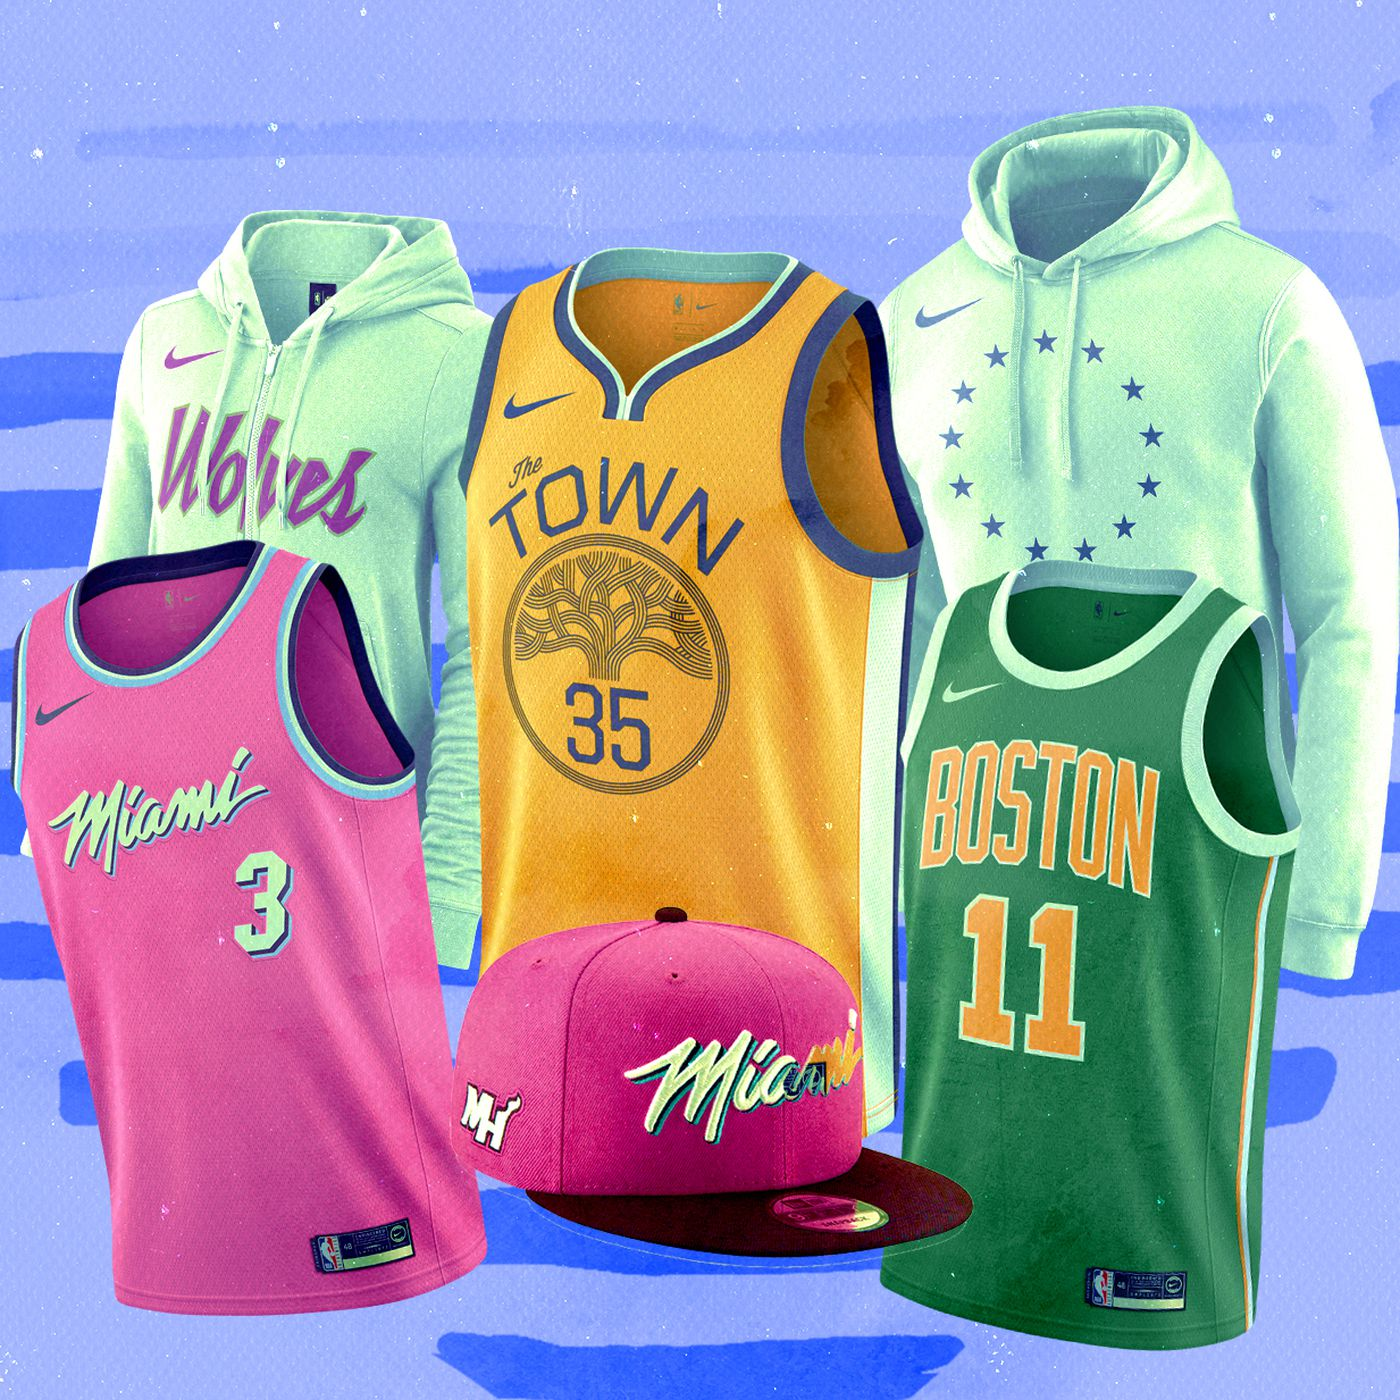 Flecha Volcán Taxi  NBA Earned Edition 2018: The jerseys and merch you'll want to buy -  SBNation.com